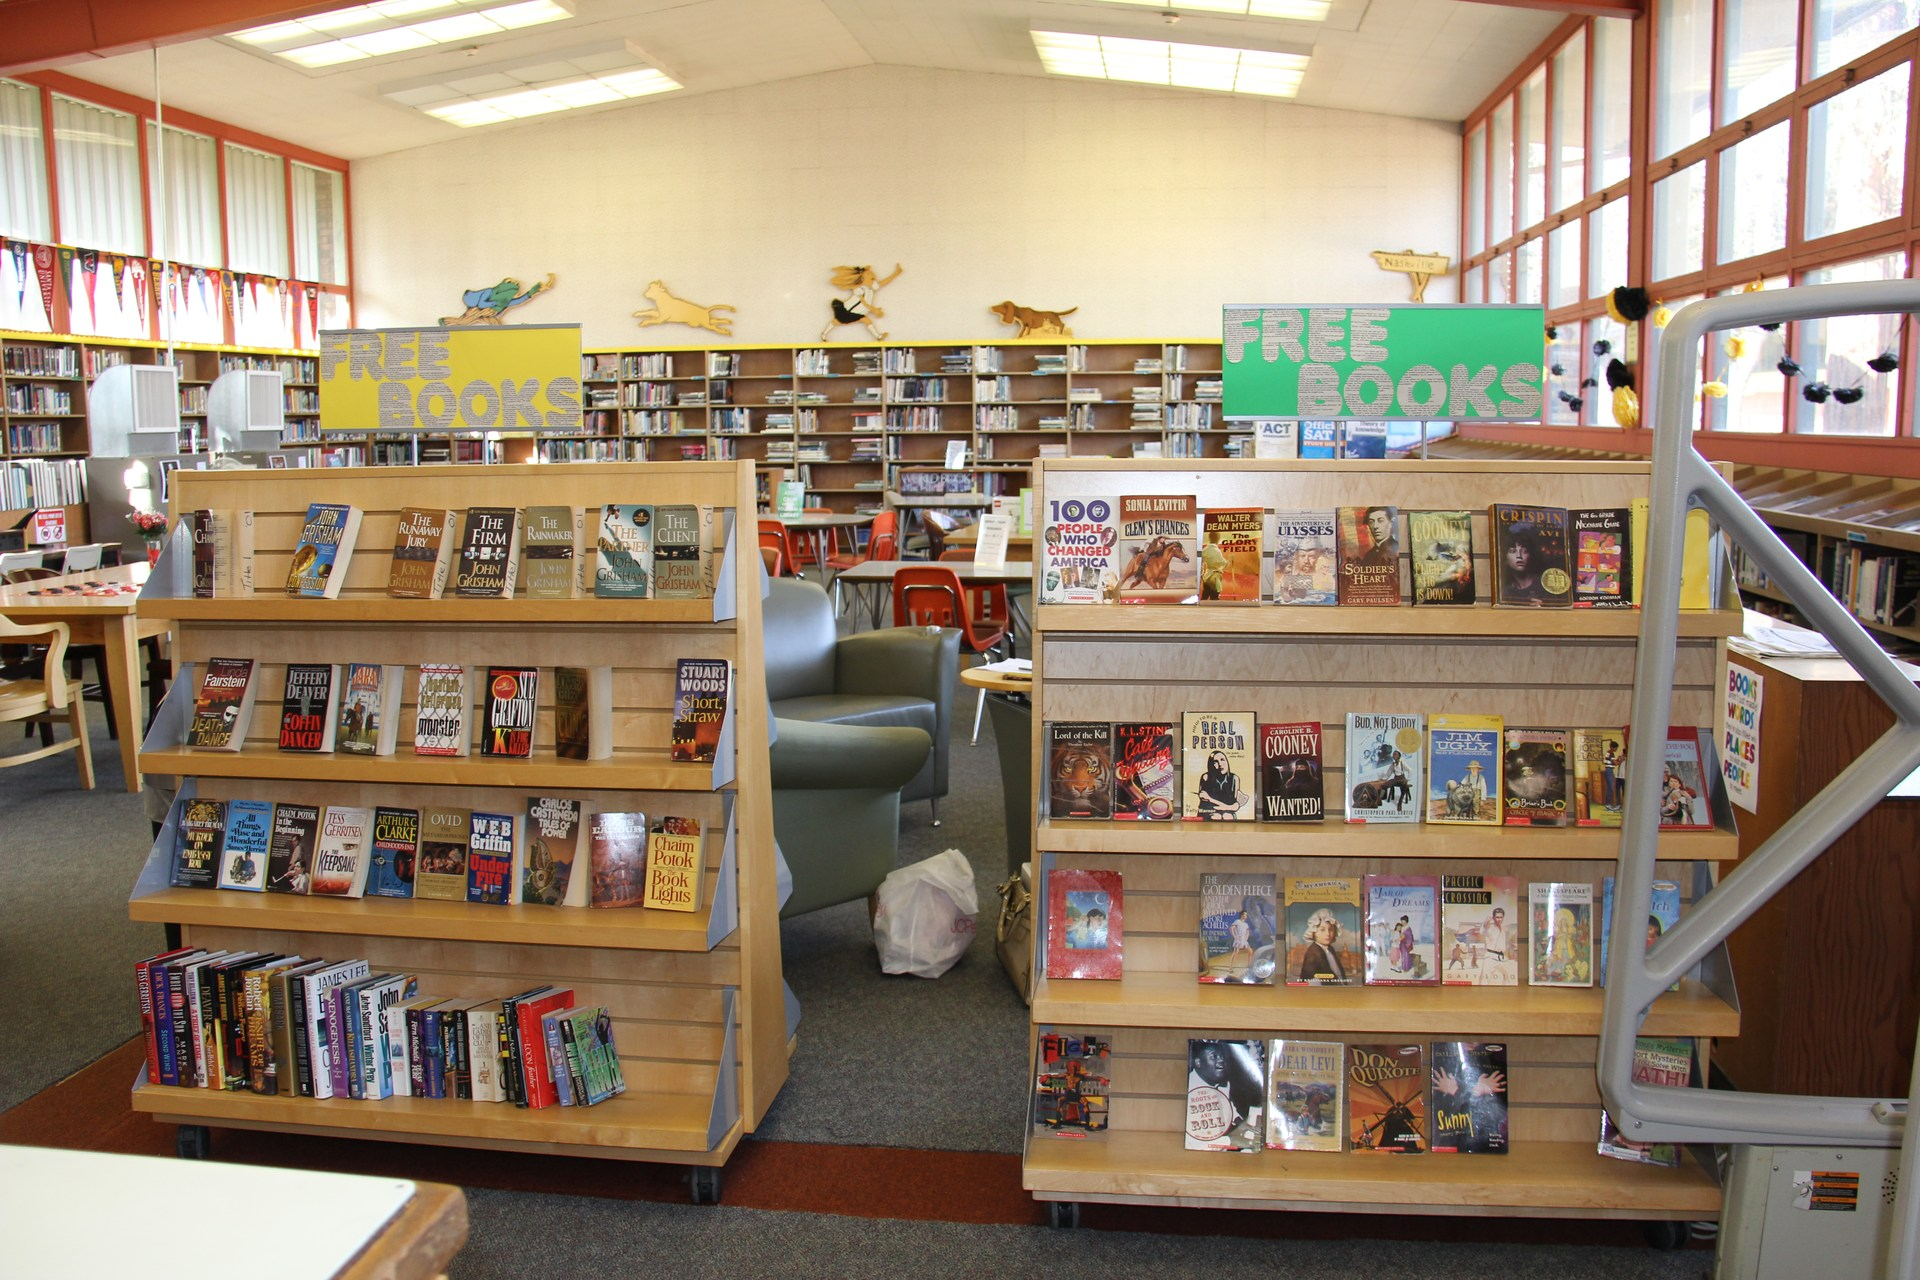 Image of books on Library shelf from entrance